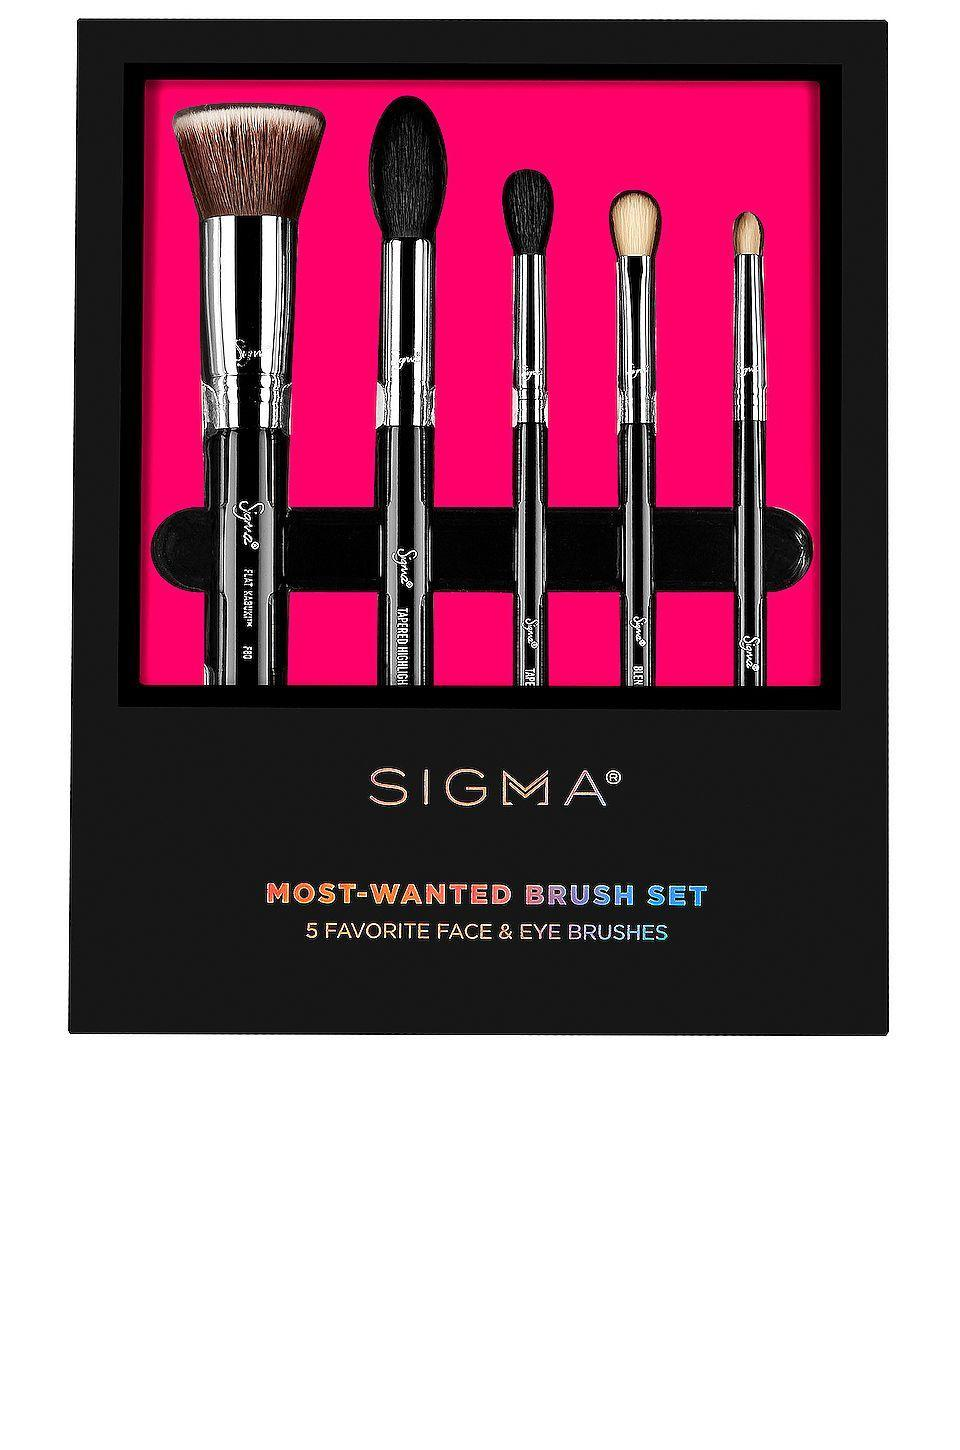 """<p><strong>Sigma Beauty</strong></p><p>revolve.com</p><p><strong>$73.00</strong></p><p><a href=""""https://go.redirectingat.com?id=74968X1596630&url=https%3A%2F%2Fwww.revolve.com%2Fdp%2FSGBY-WU12%2F&sref=https%3A%2F%2Fwww.prevention.com%2Fbeauty%2Fmakeup%2Fg37620517%2Fbest-makeup-brush-sets%2F"""" rel=""""nofollow noopener"""" target=""""_blank"""" data-ylk=""""slk:Shop Now"""" class=""""link rapid-noclick-resp"""">Shop Now</a></p><p>It's called most-wanted for a reason. Sigma is considered an OG brand when it comes to makeup brushes, being one of the first to push non-professionals away from using that foam tip applicator that comes in drugstore palettes. This set features <strong>their most popular designs</strong> including a flat top kabuki, a tapered highlighting brush, two blending brushes for eyeshadow, and a pencil brush. </p>"""